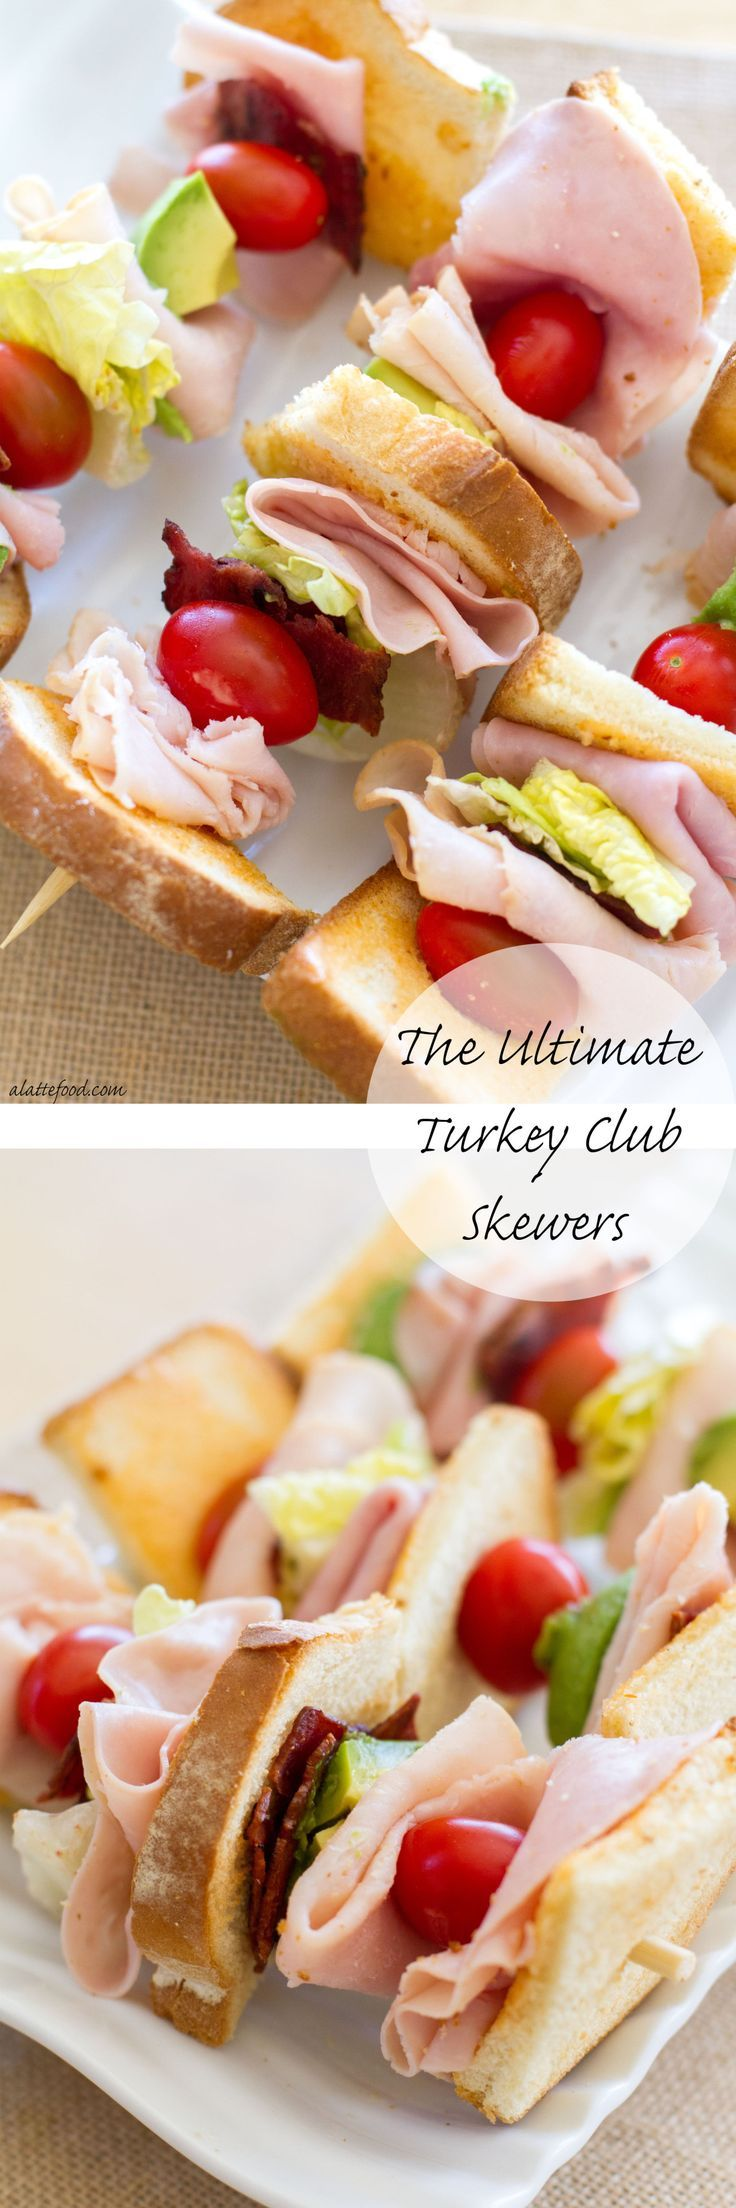 These deconstructed turkey club sandwiches are packed with the works ...